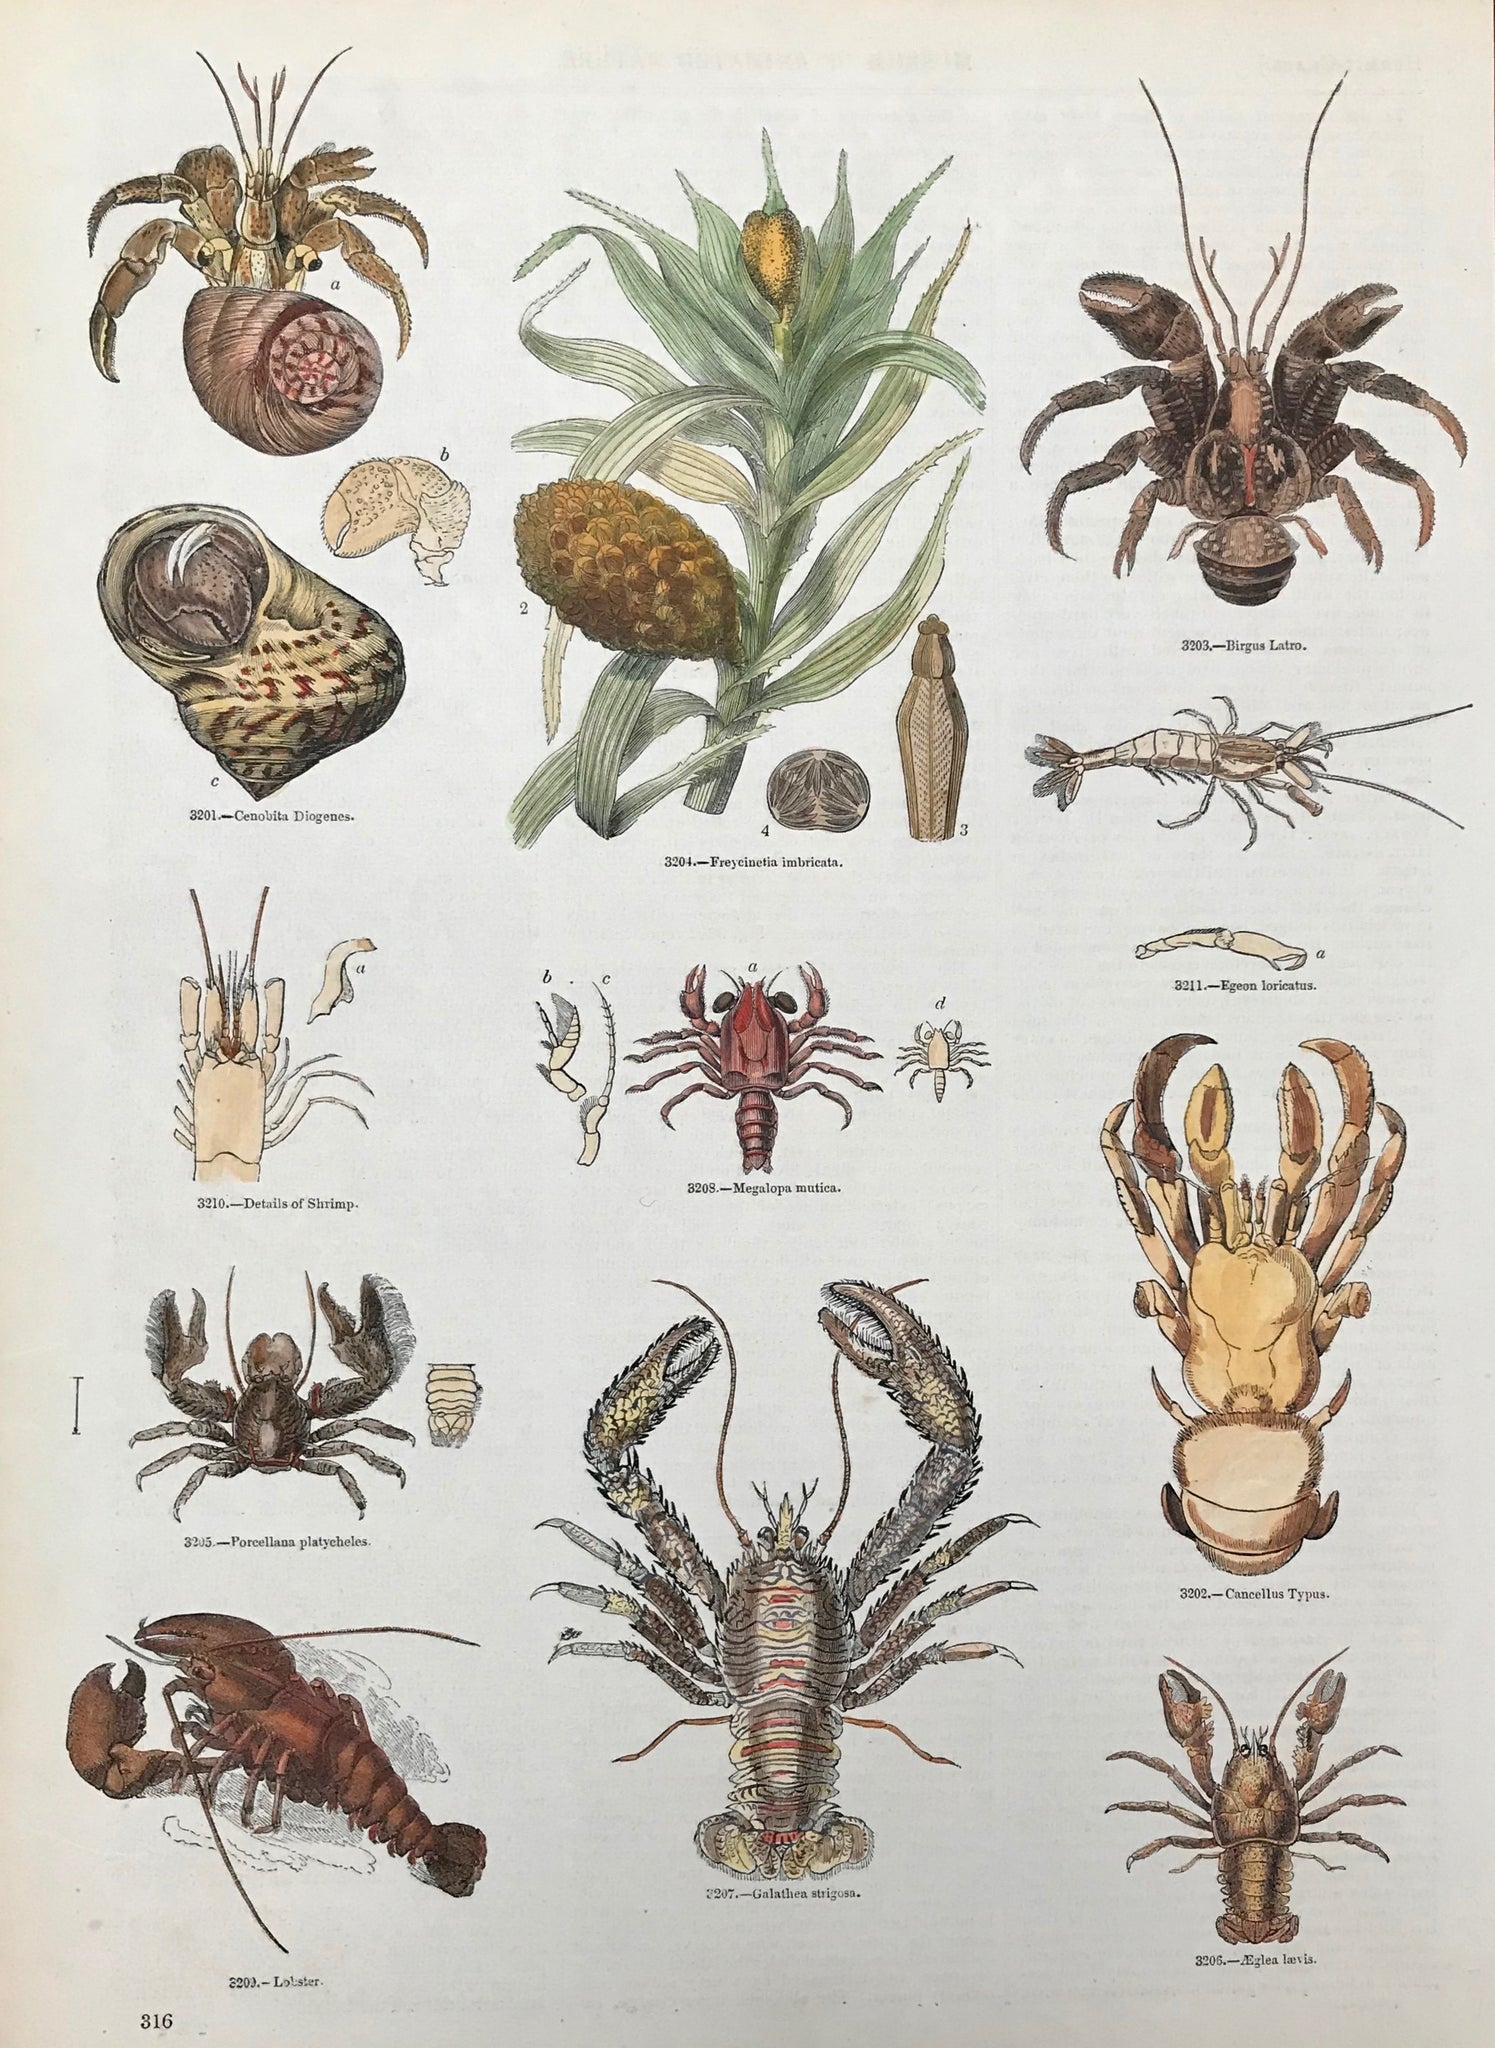 Cenobita Diogenes, Freycinetia imbricata, Birgus Latro, Details of a shrimp, Megalopa mutica, Egeon loricatus, Porcellana platycheles, Cancellus Typus, Lobster, Galathea Strigosa, Aeglea laevis  Wood engravings from an illustrated work ca 1875. Recent hand coloring. On the reverse side is text (in English) about these animals.